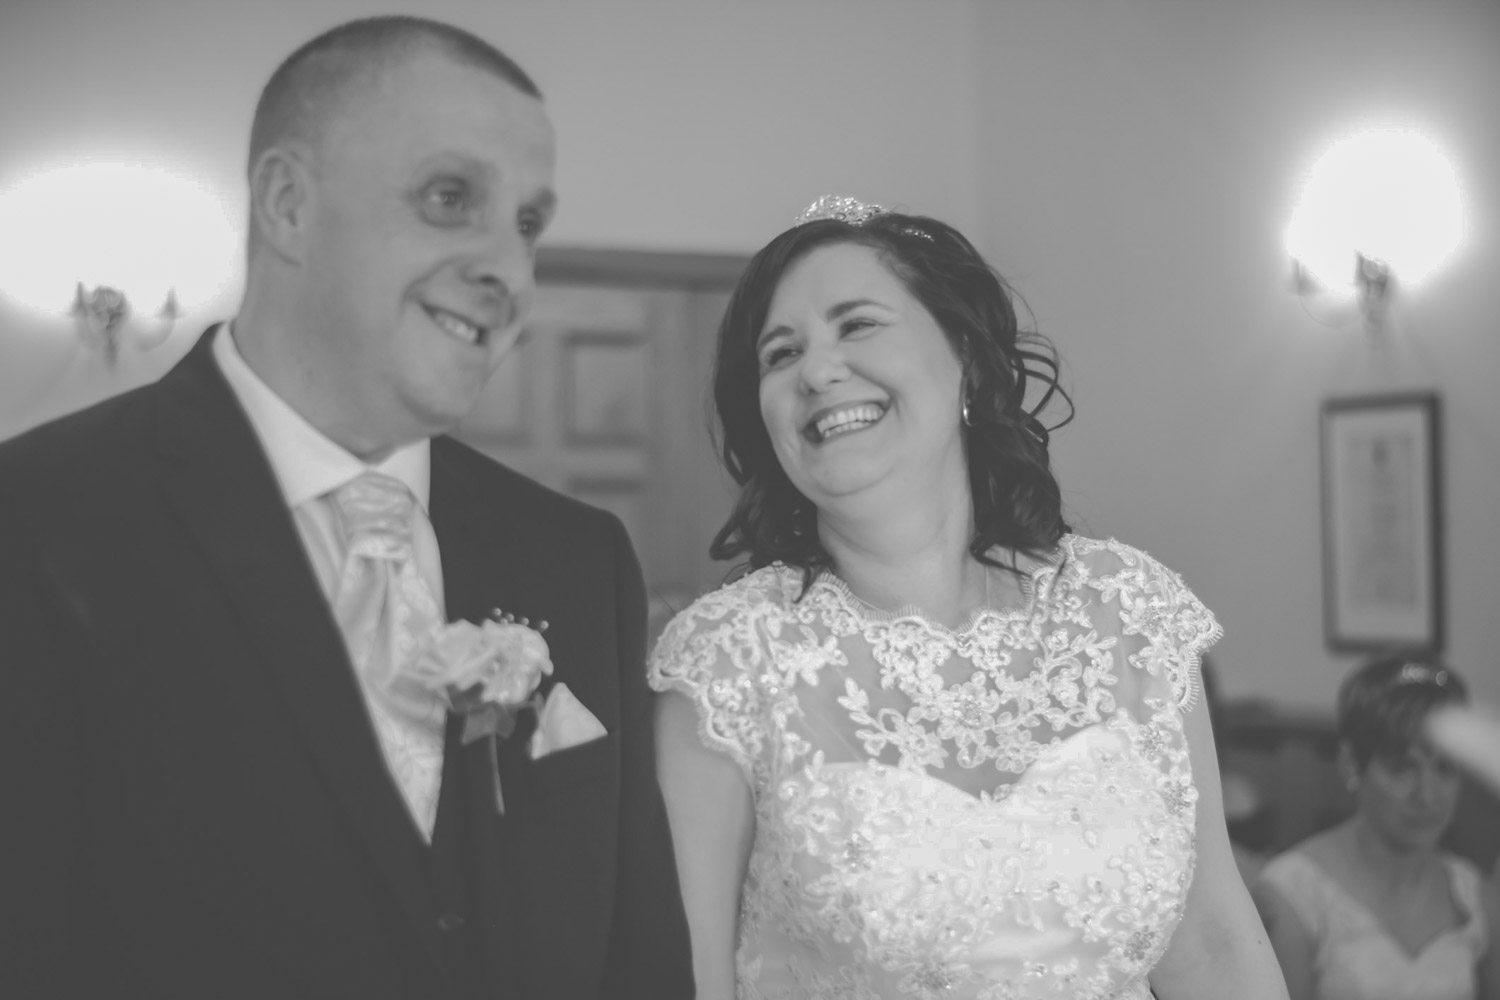 keighley-wedding-photographer-bradford-registry-office-silver-birch-chicca-9.jpg